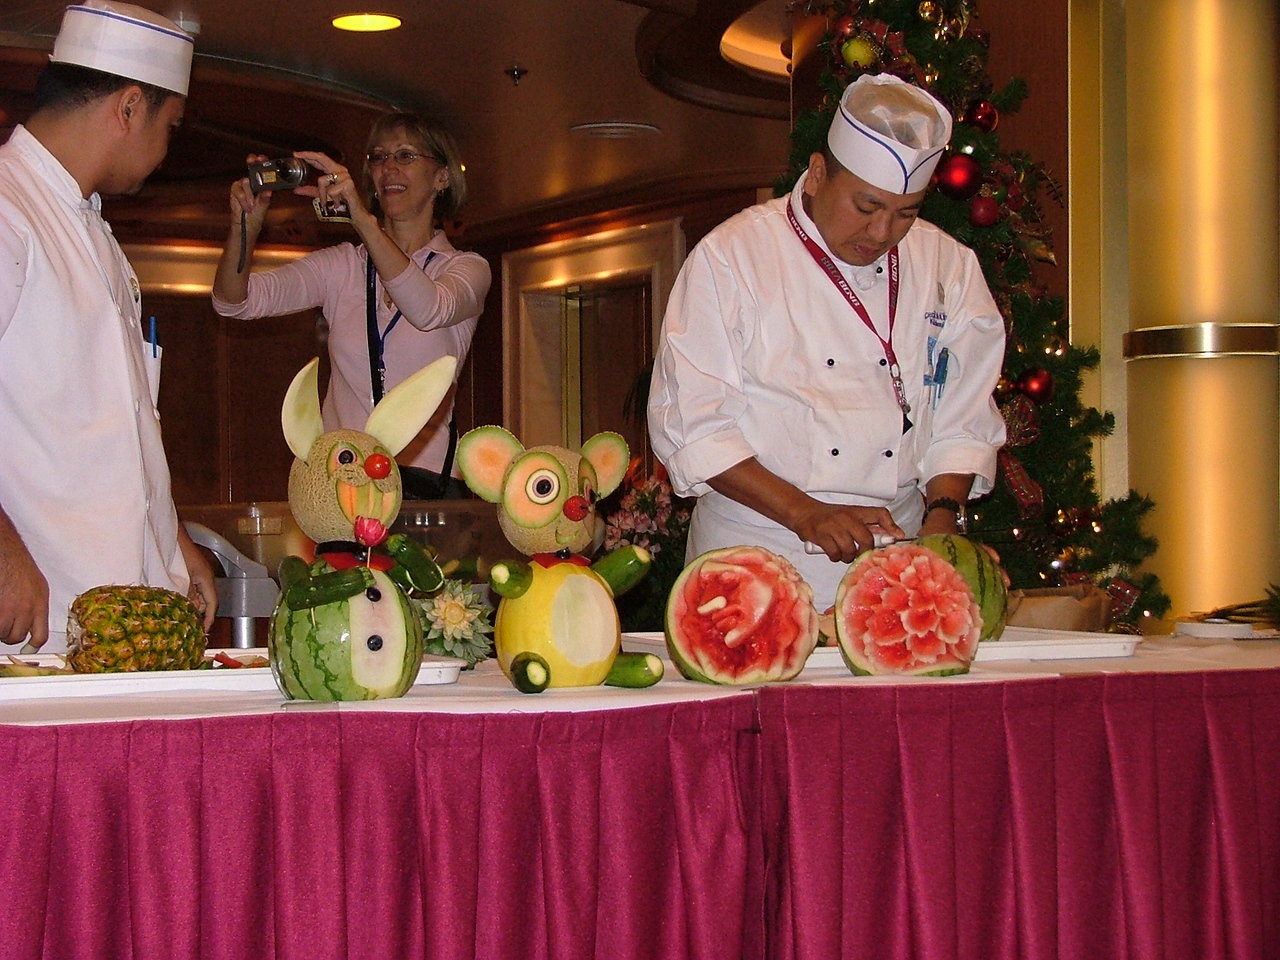 Fruit and veggie carving demo.